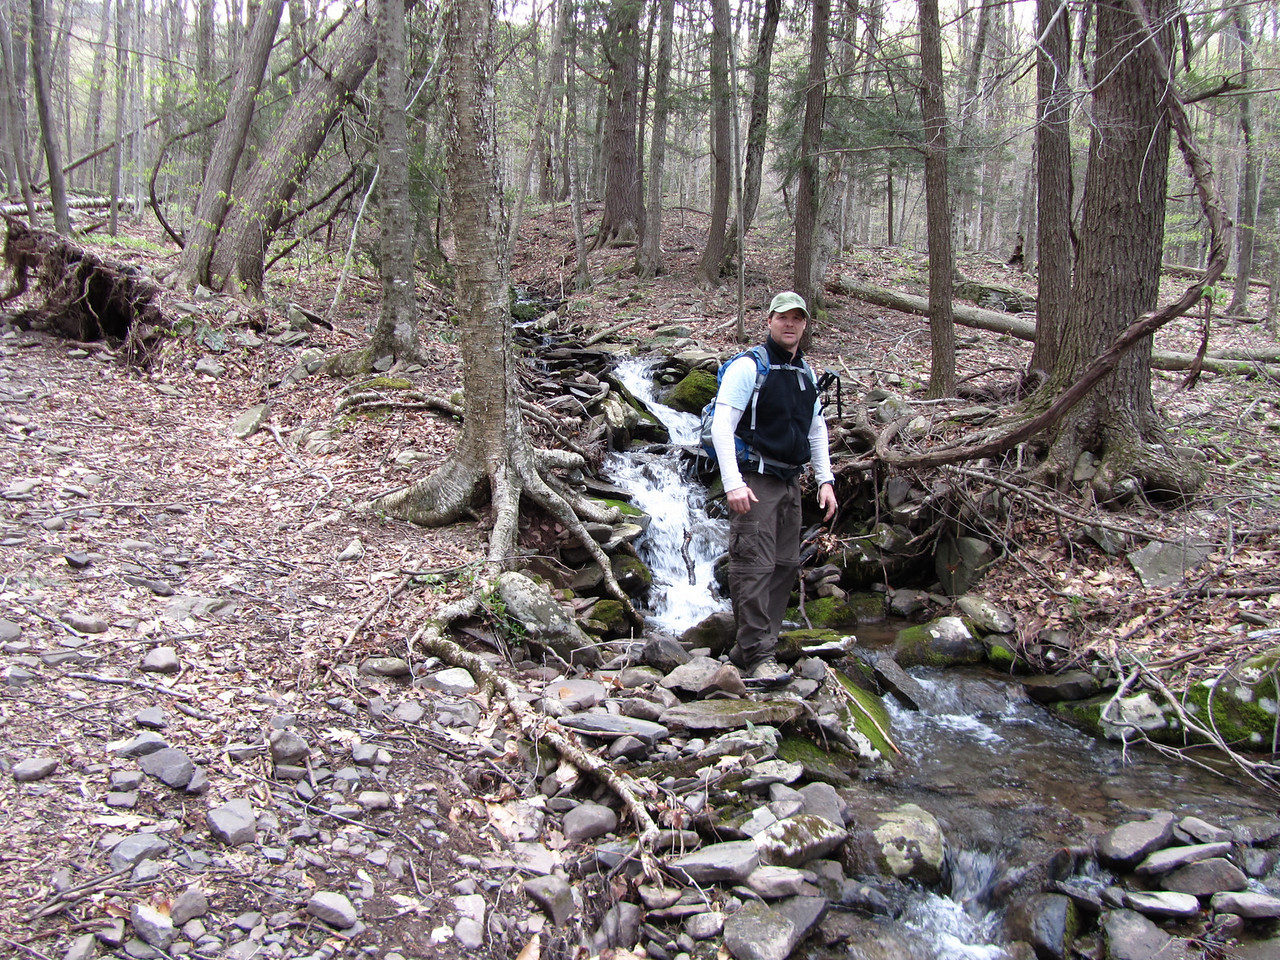 Babbling brook and babbling Rob.The recent rains had all the streams full.